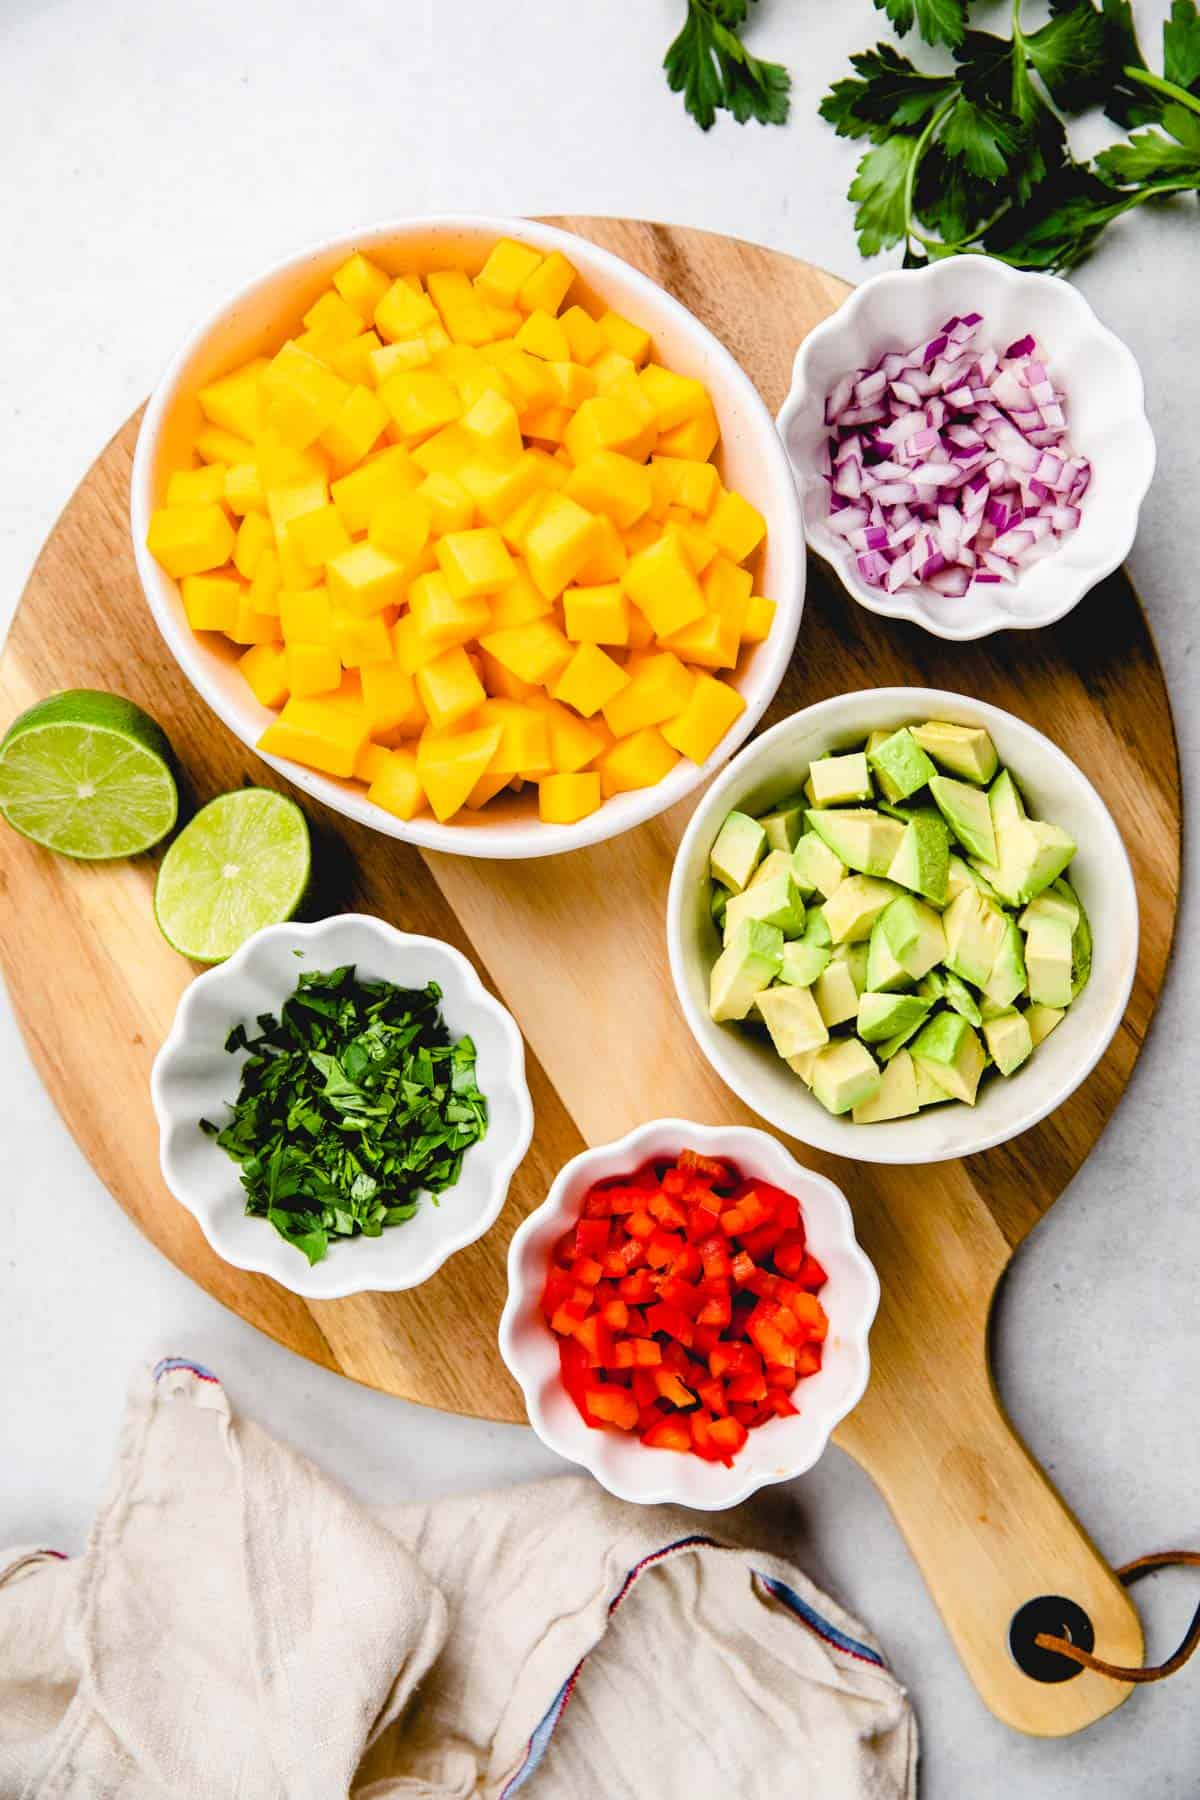 Chopped Ingredients for mango avocado salsa in separate bowls.